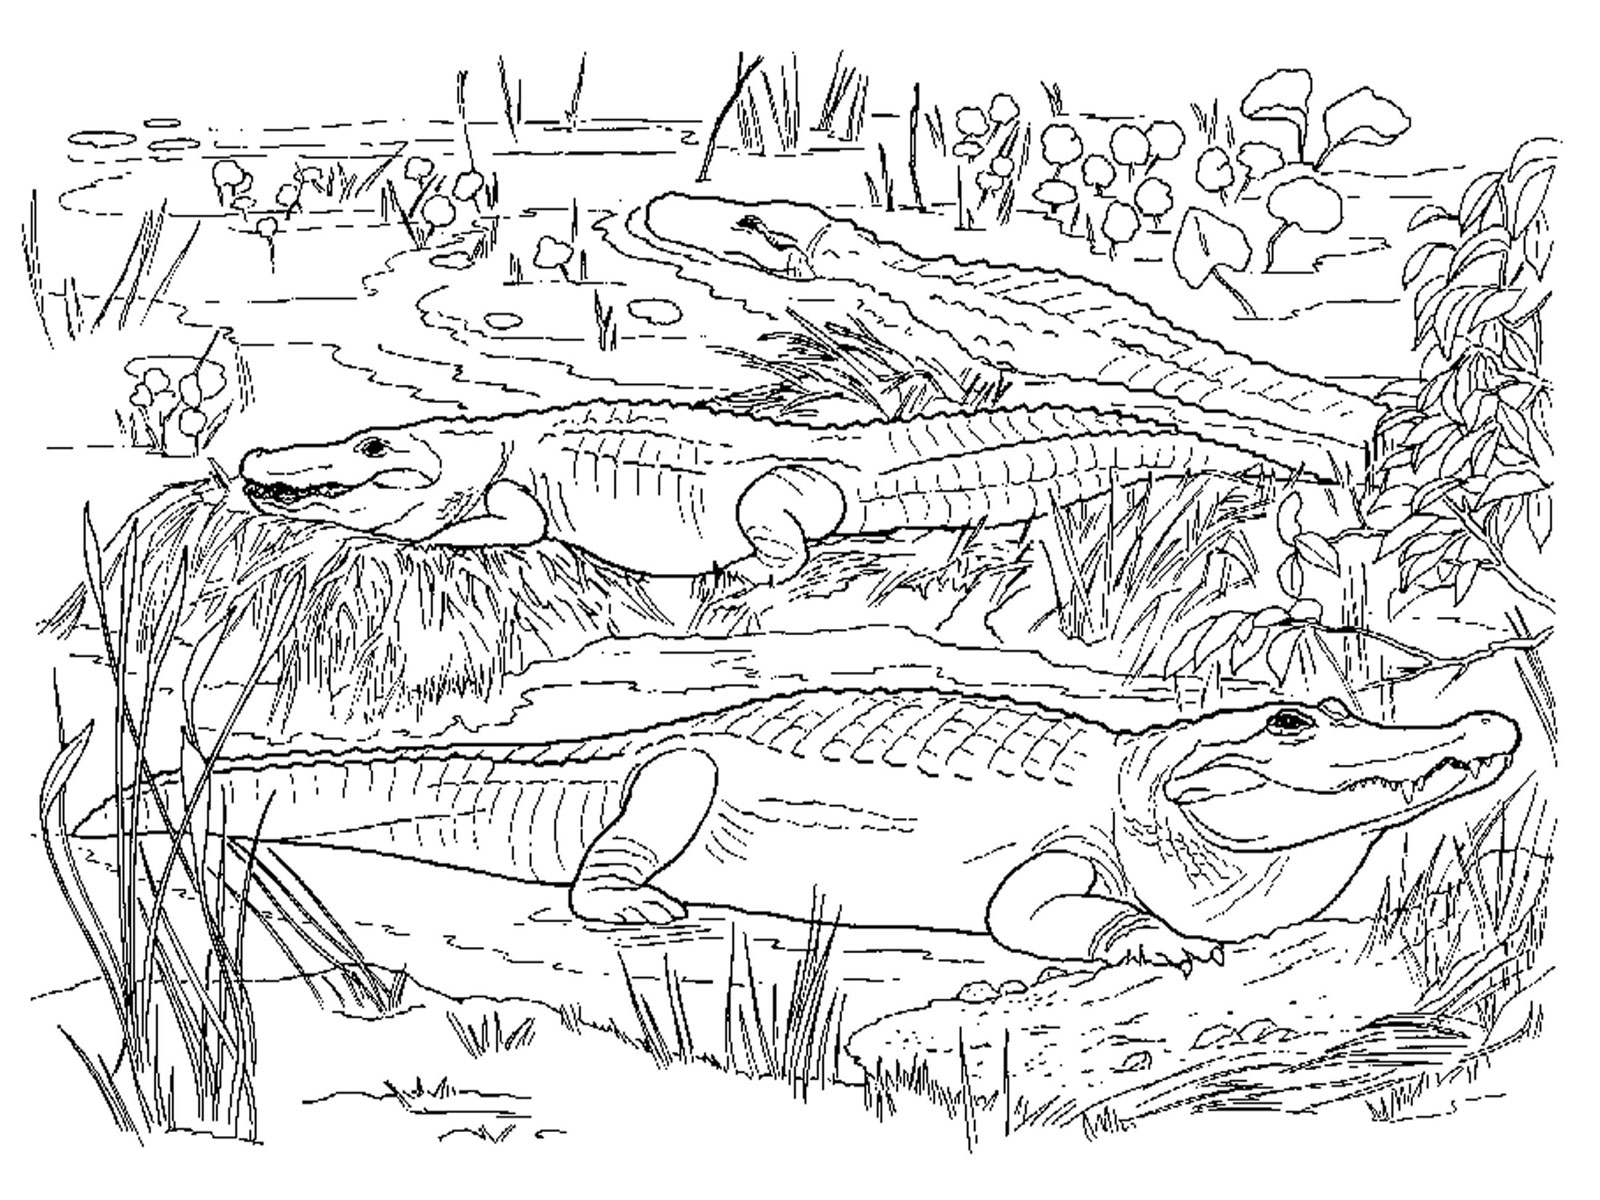 alligator coloring sheets crocodile coloring pages to download and print for free alligator coloring sheets